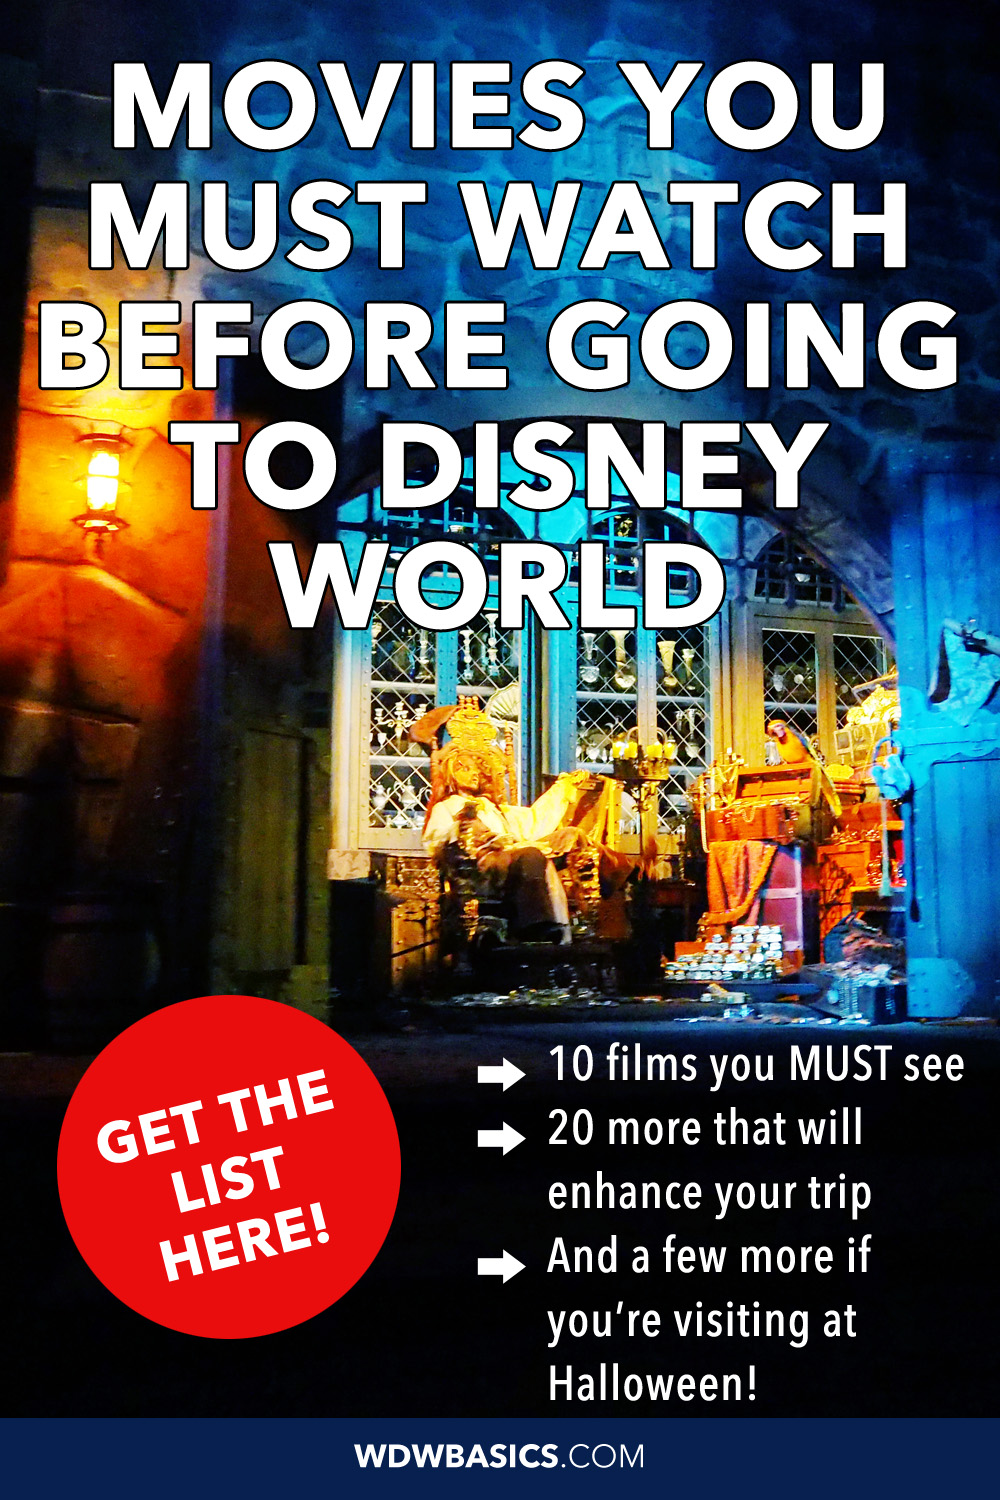 Movies you must watch before going to Disney World